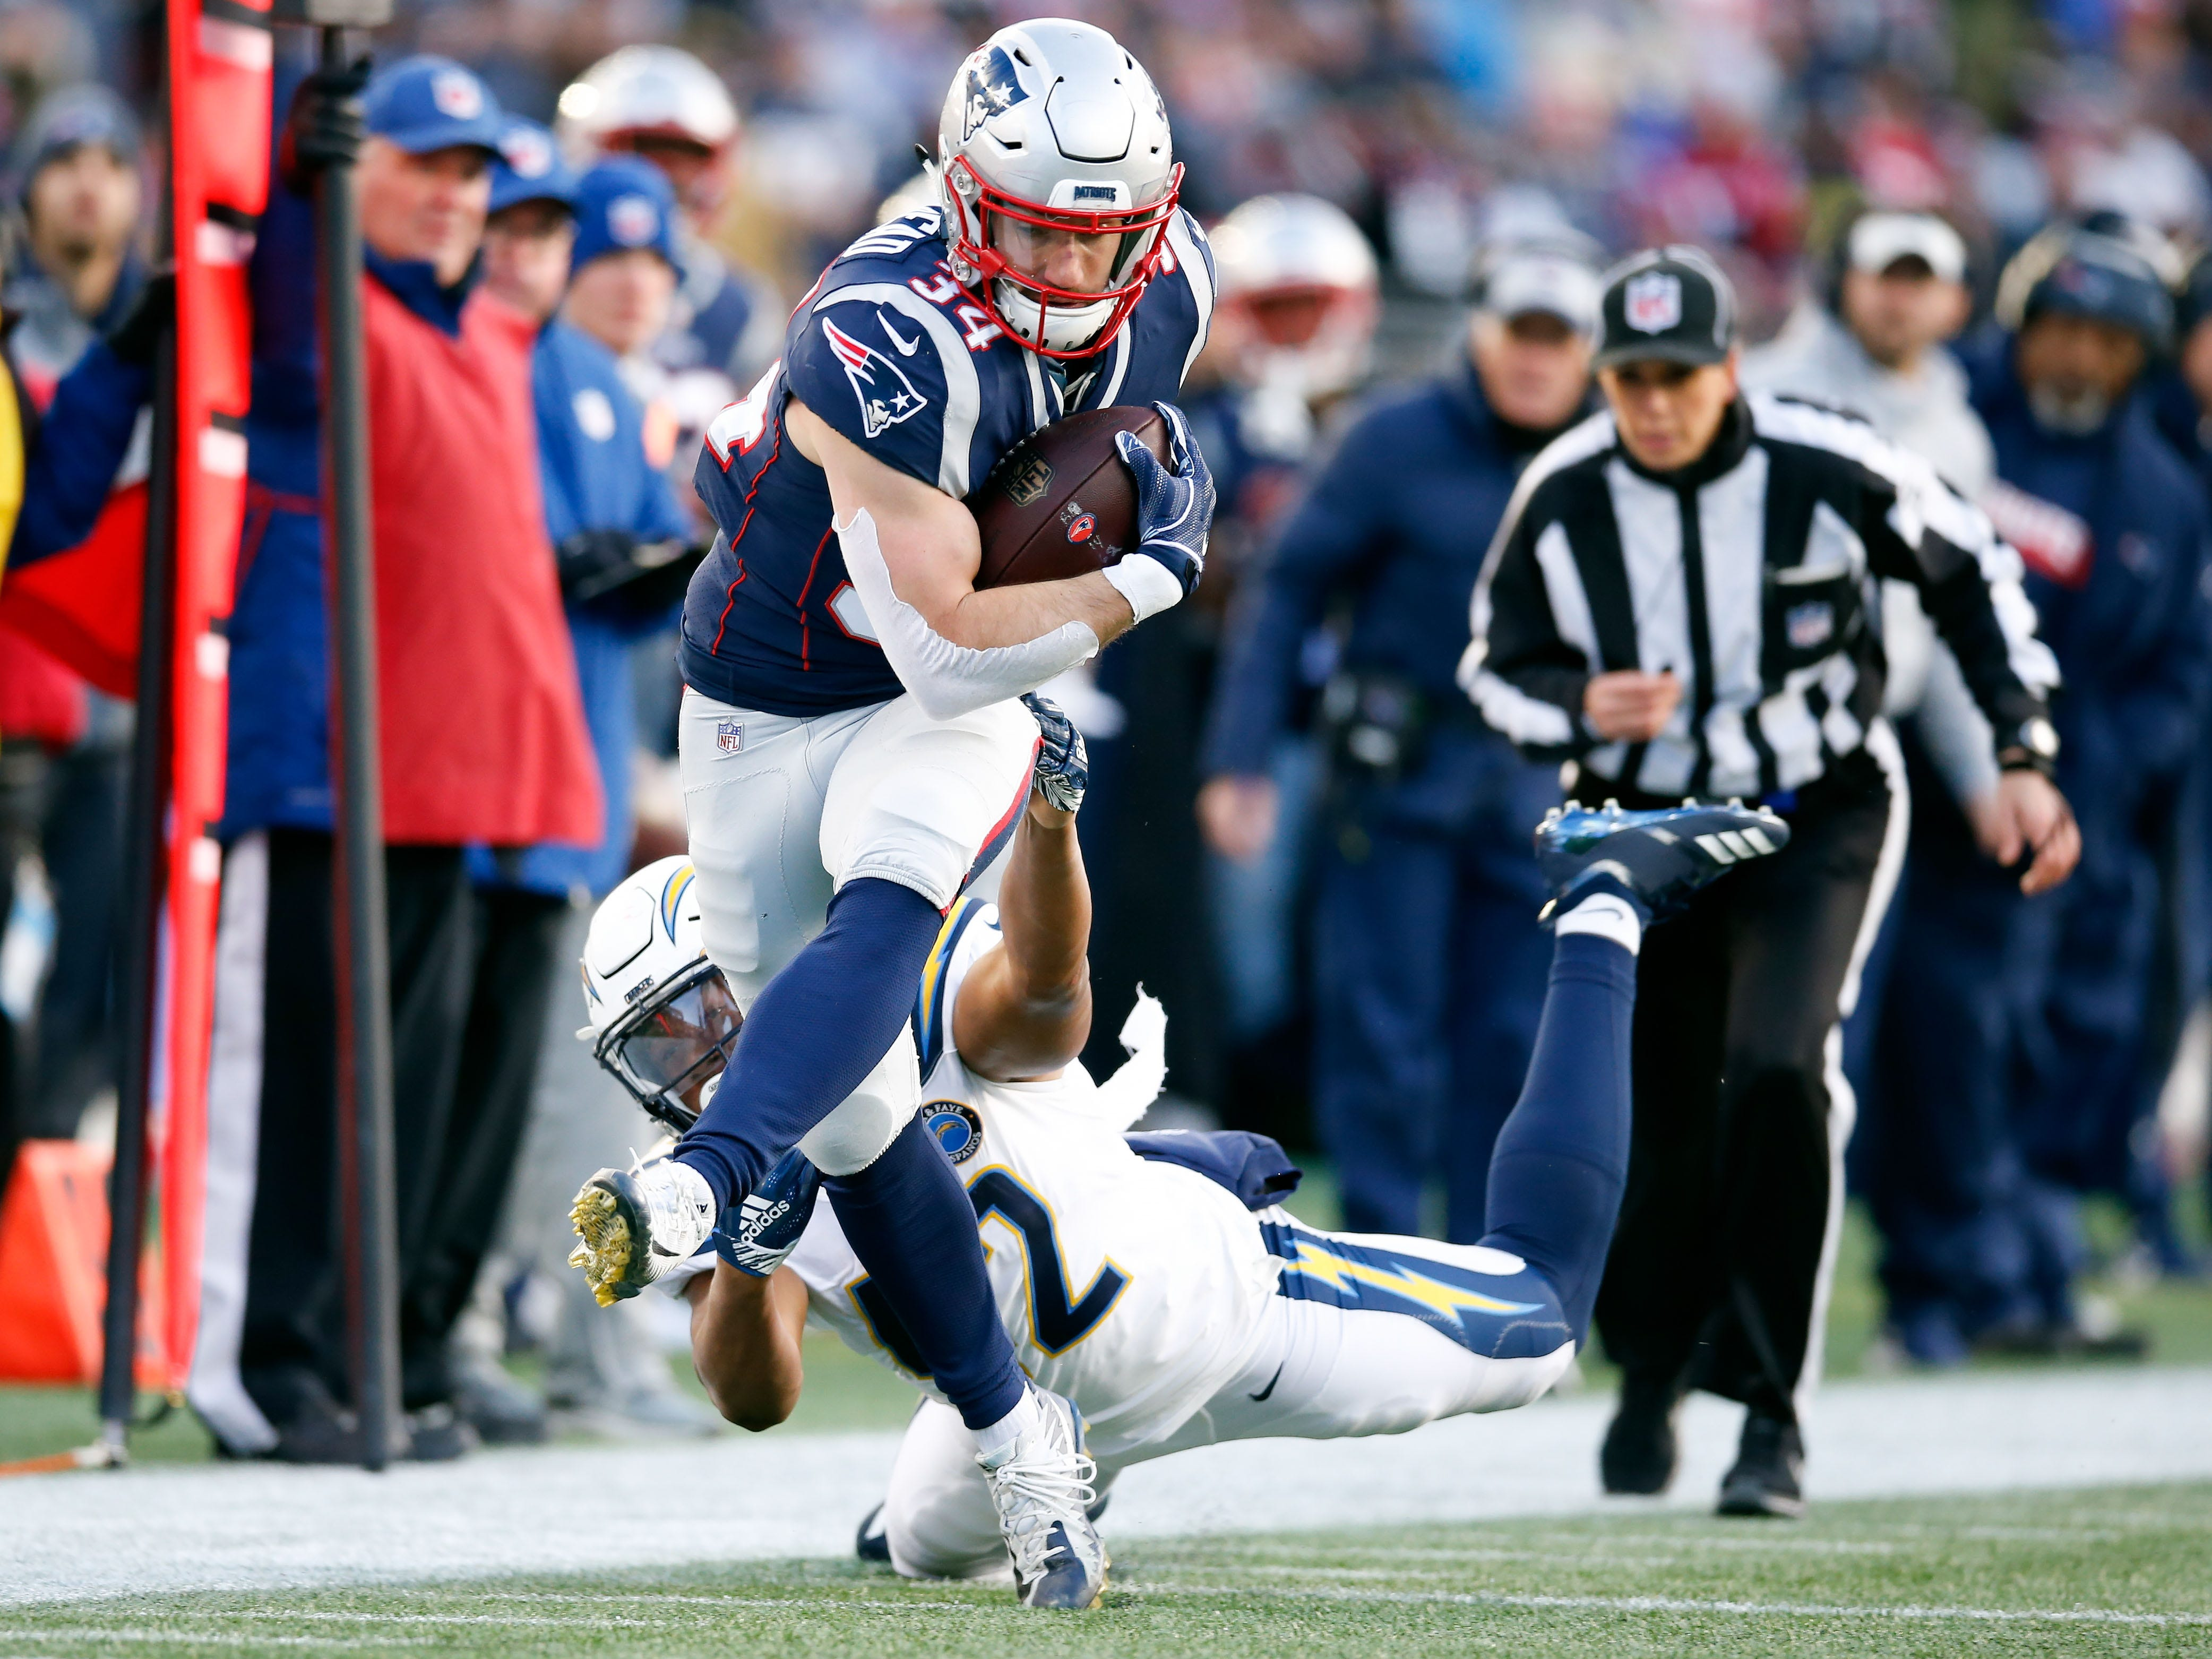 New England Patriots running back Rex Burkhead (34) runs against Los Angeles Chargers linebacker Uchenna Nwosu (42) during the third quarter in an AFC Divisional playoff football game at Gillette Stadium.